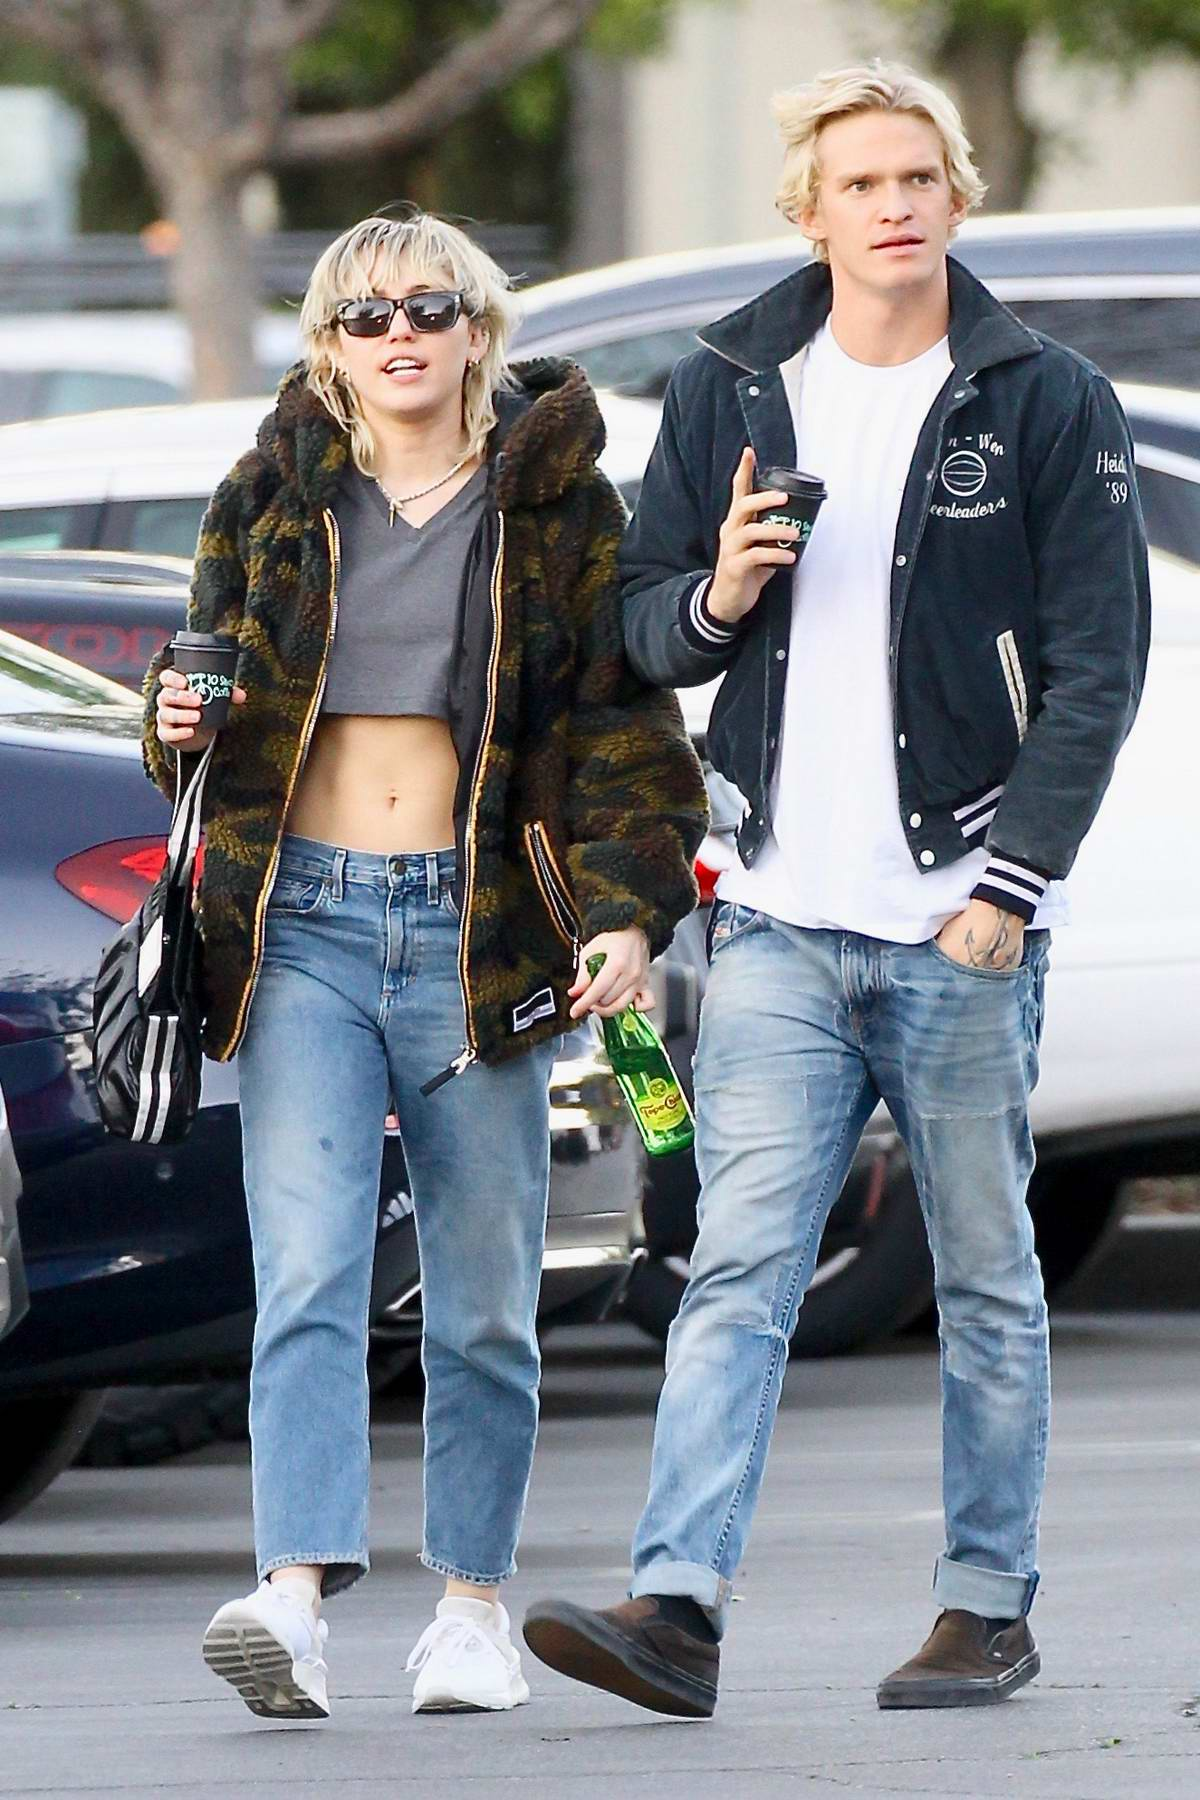 Miley Cyrus steps out with boyfriend Cody Simpson to pick up sushi in Toluca Lake, California